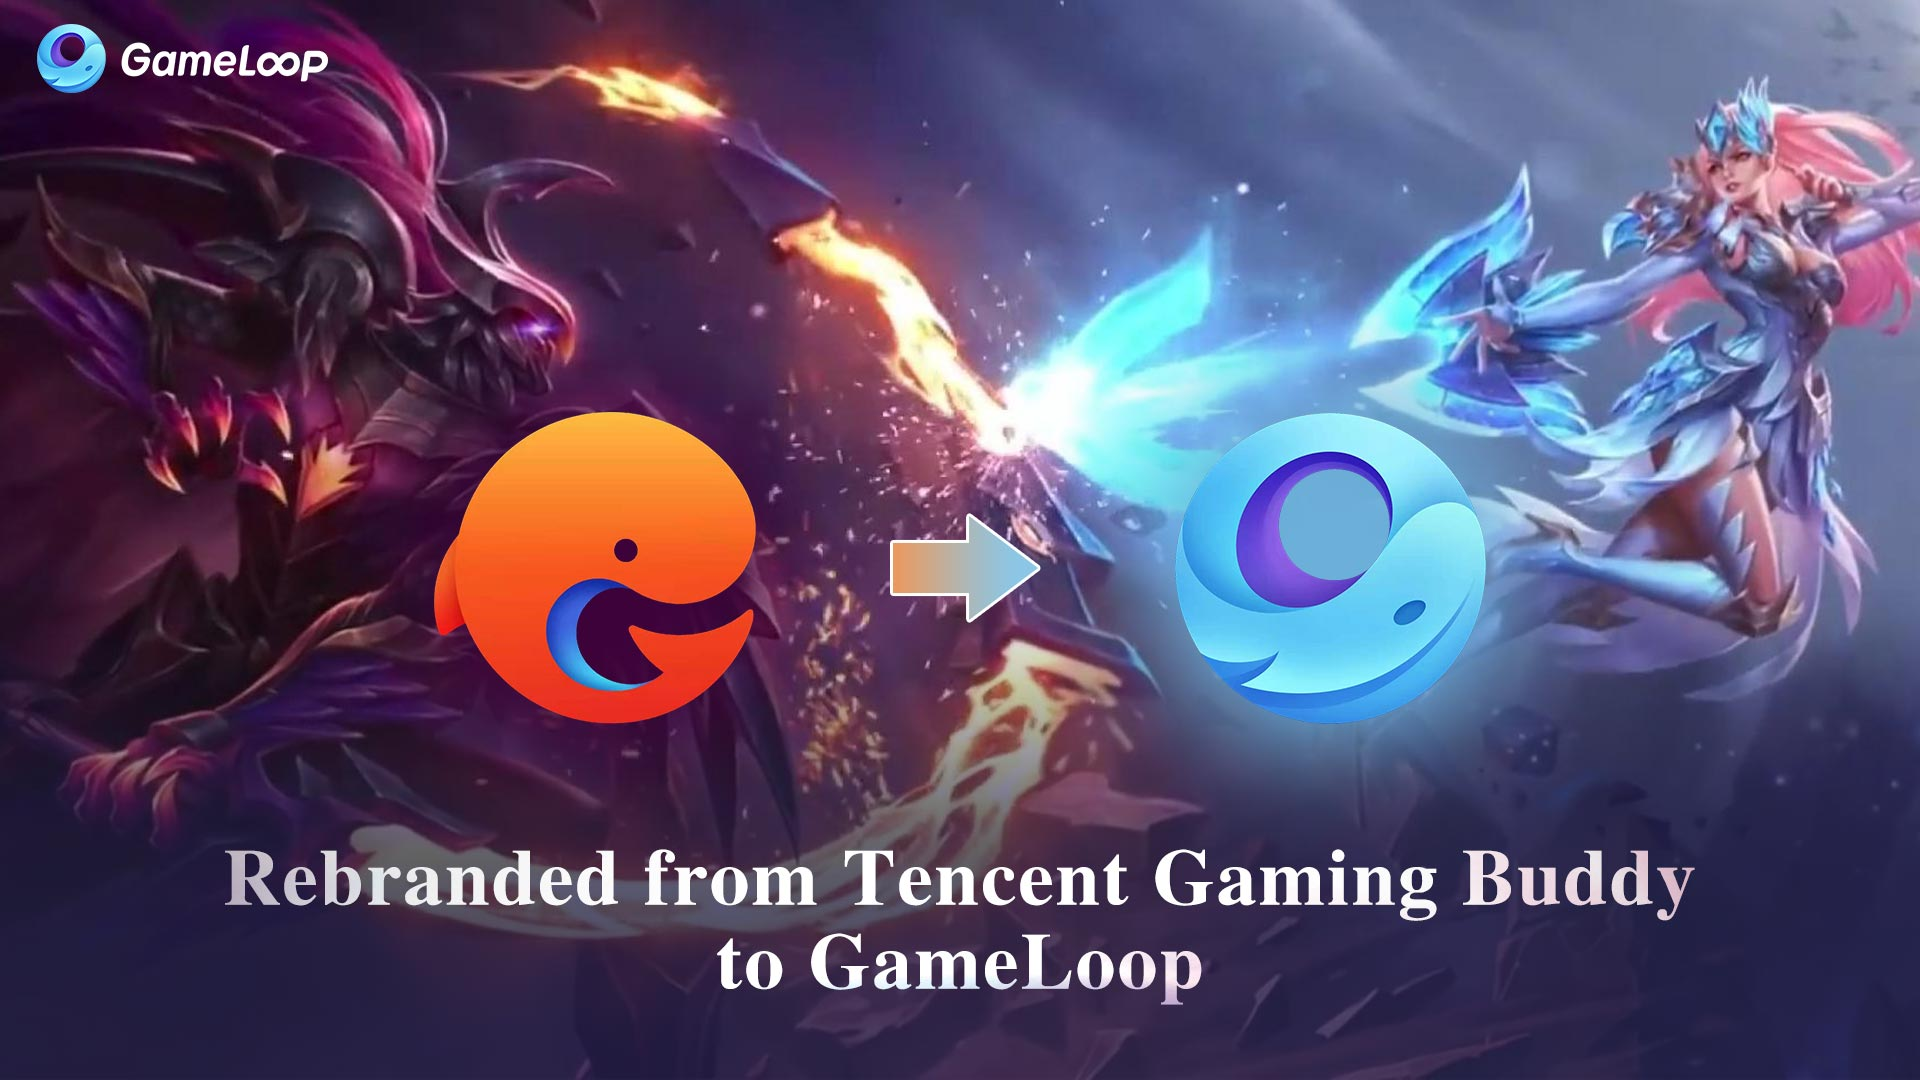 Tencent Gaming Buddy has Rebranded to GameLoop